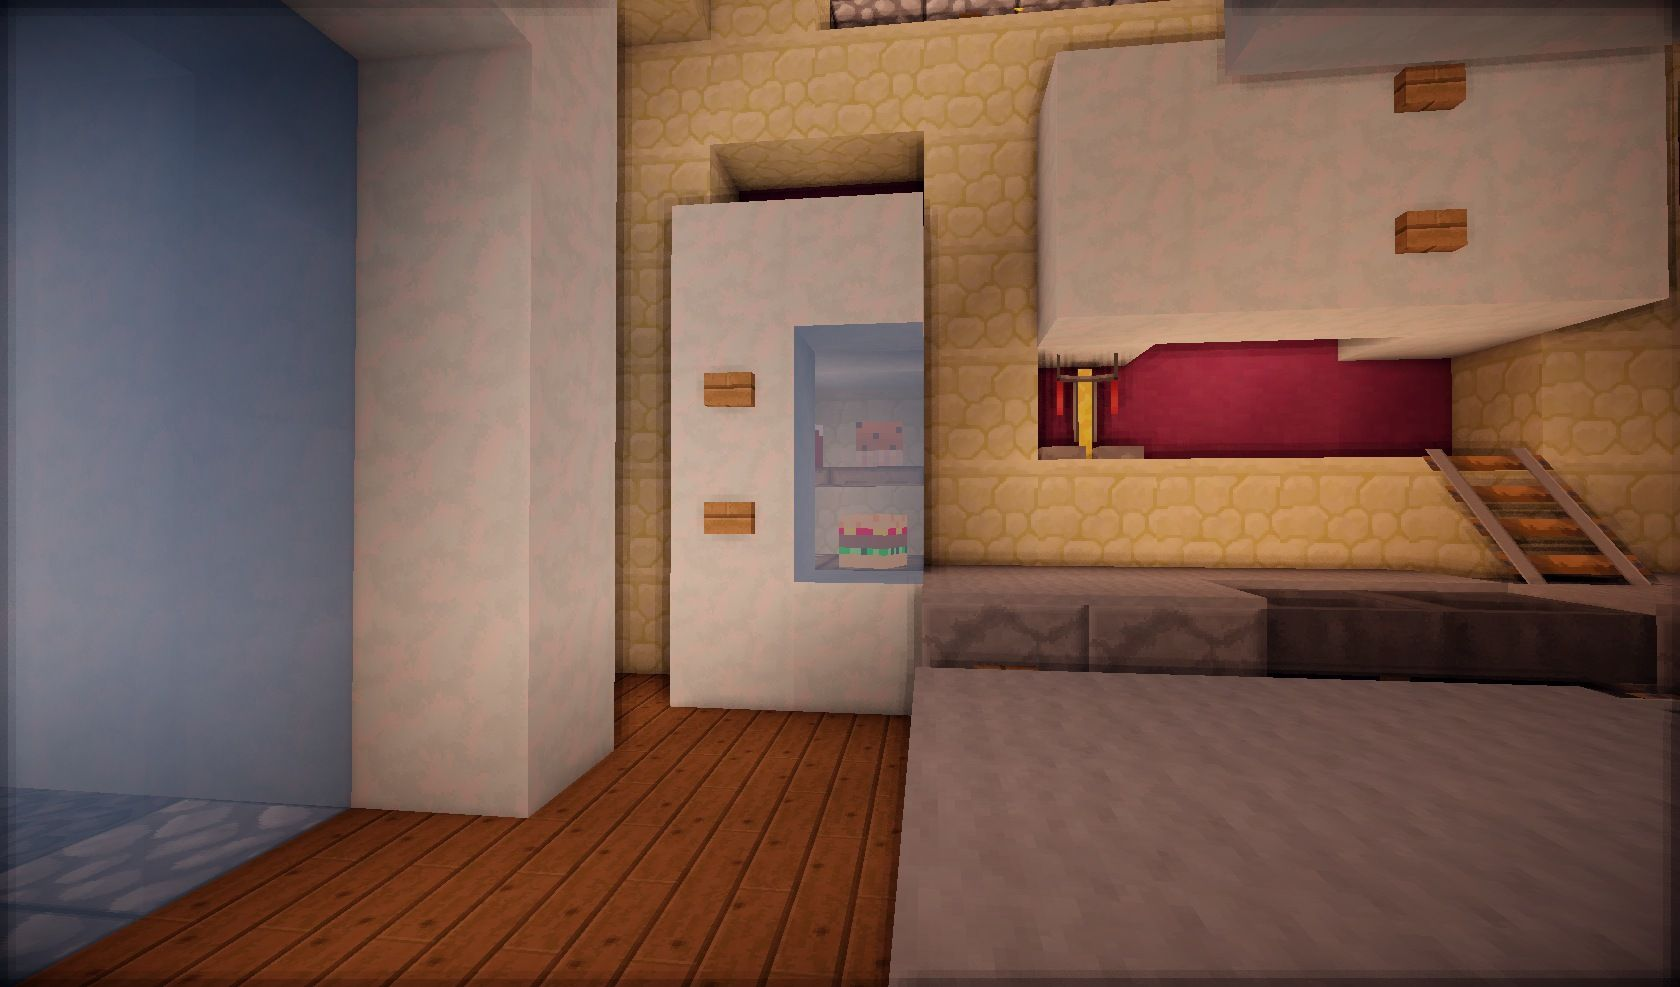 Minecraft best fridge design by retaq | Minecraft furniture ...